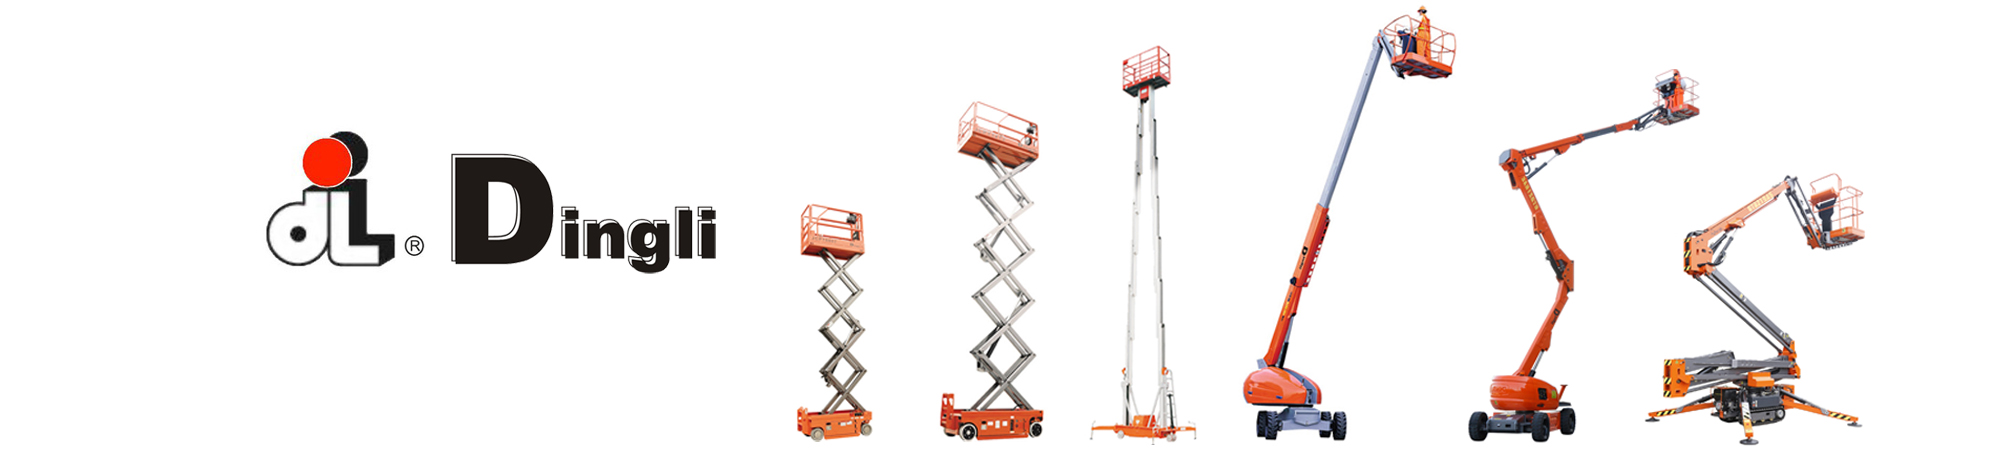 New lifts from Dingli: GTBZ AE and GTBZ 19A